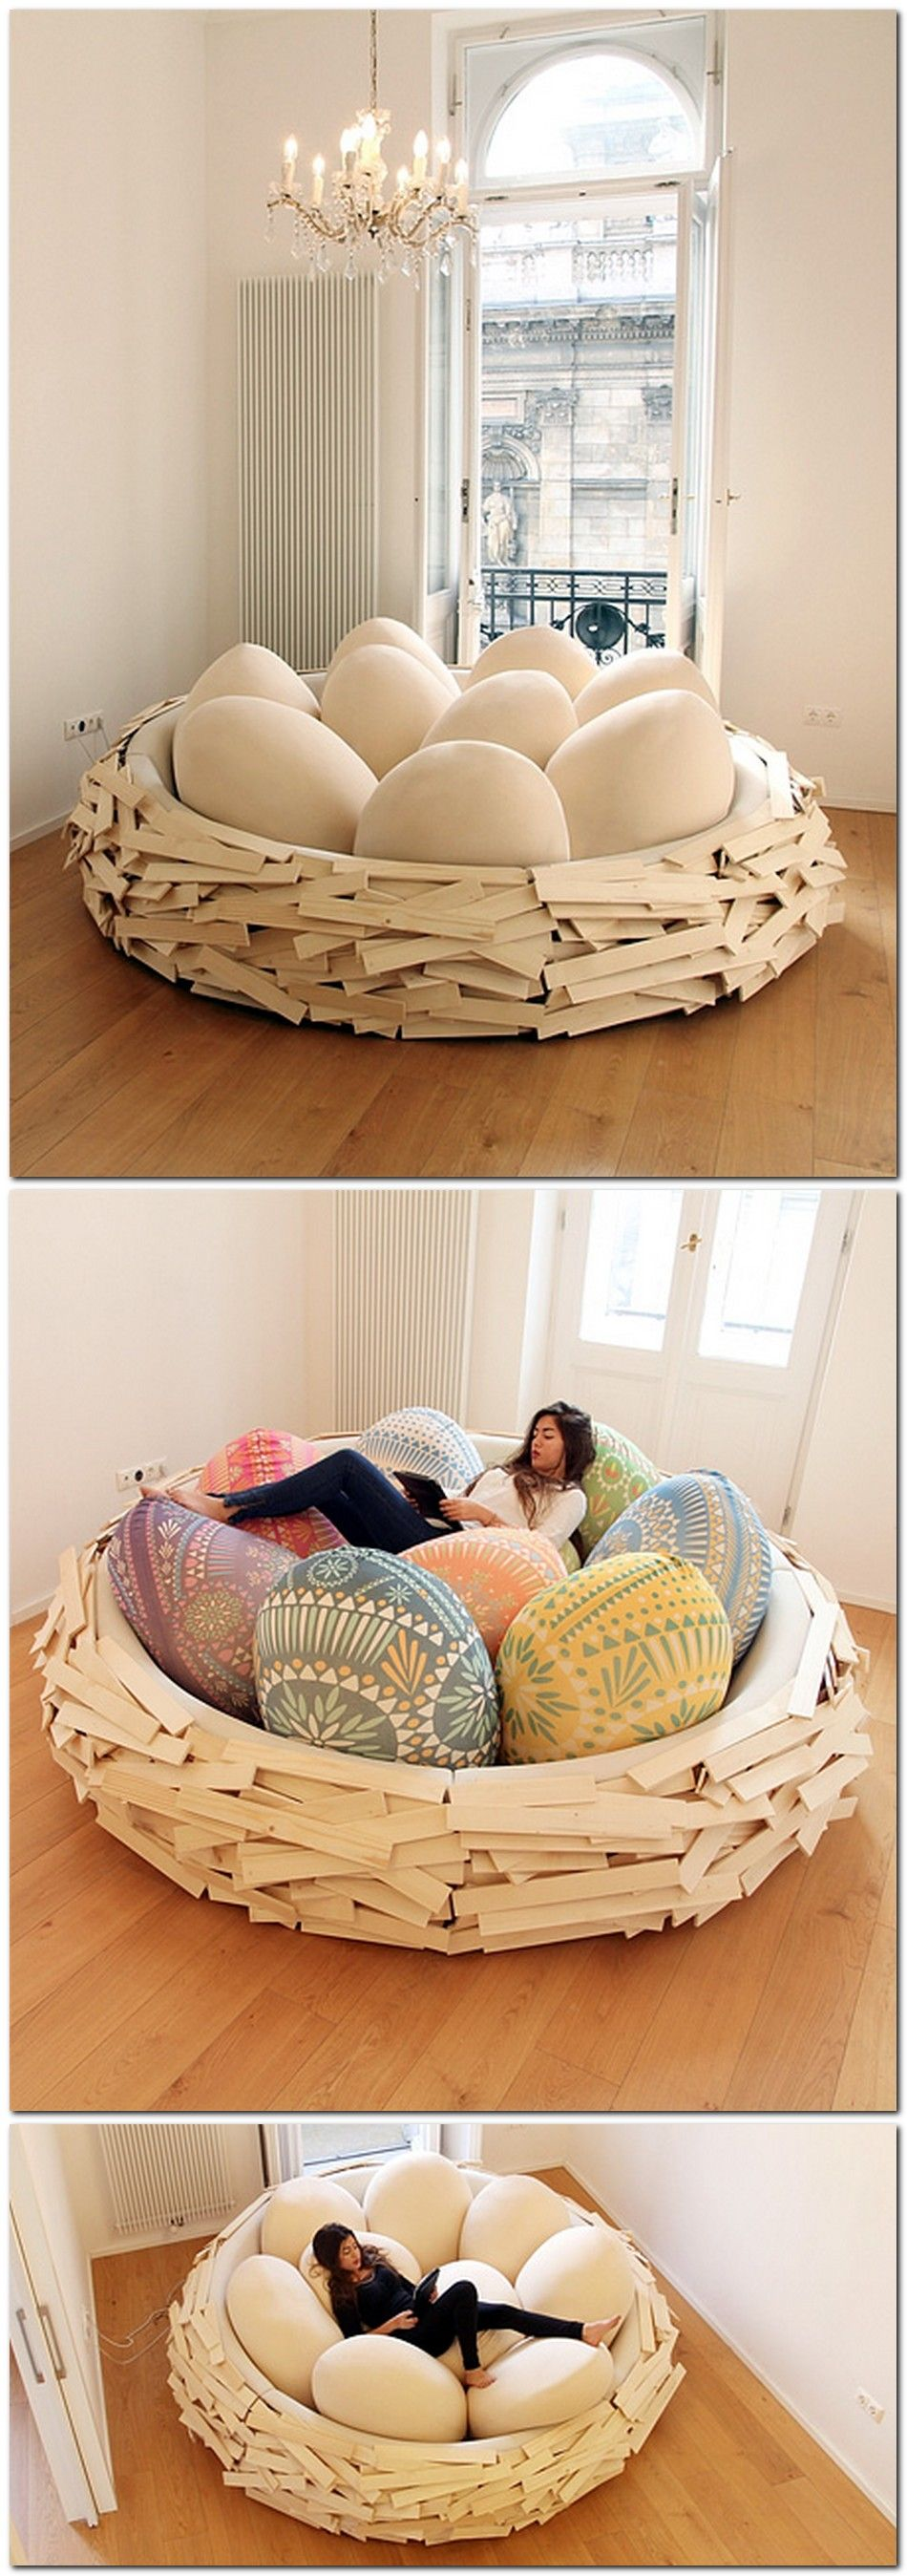 Unusual And Creative Bed Designed By OGE Looks Like A Giant Birdu0027s Nest.